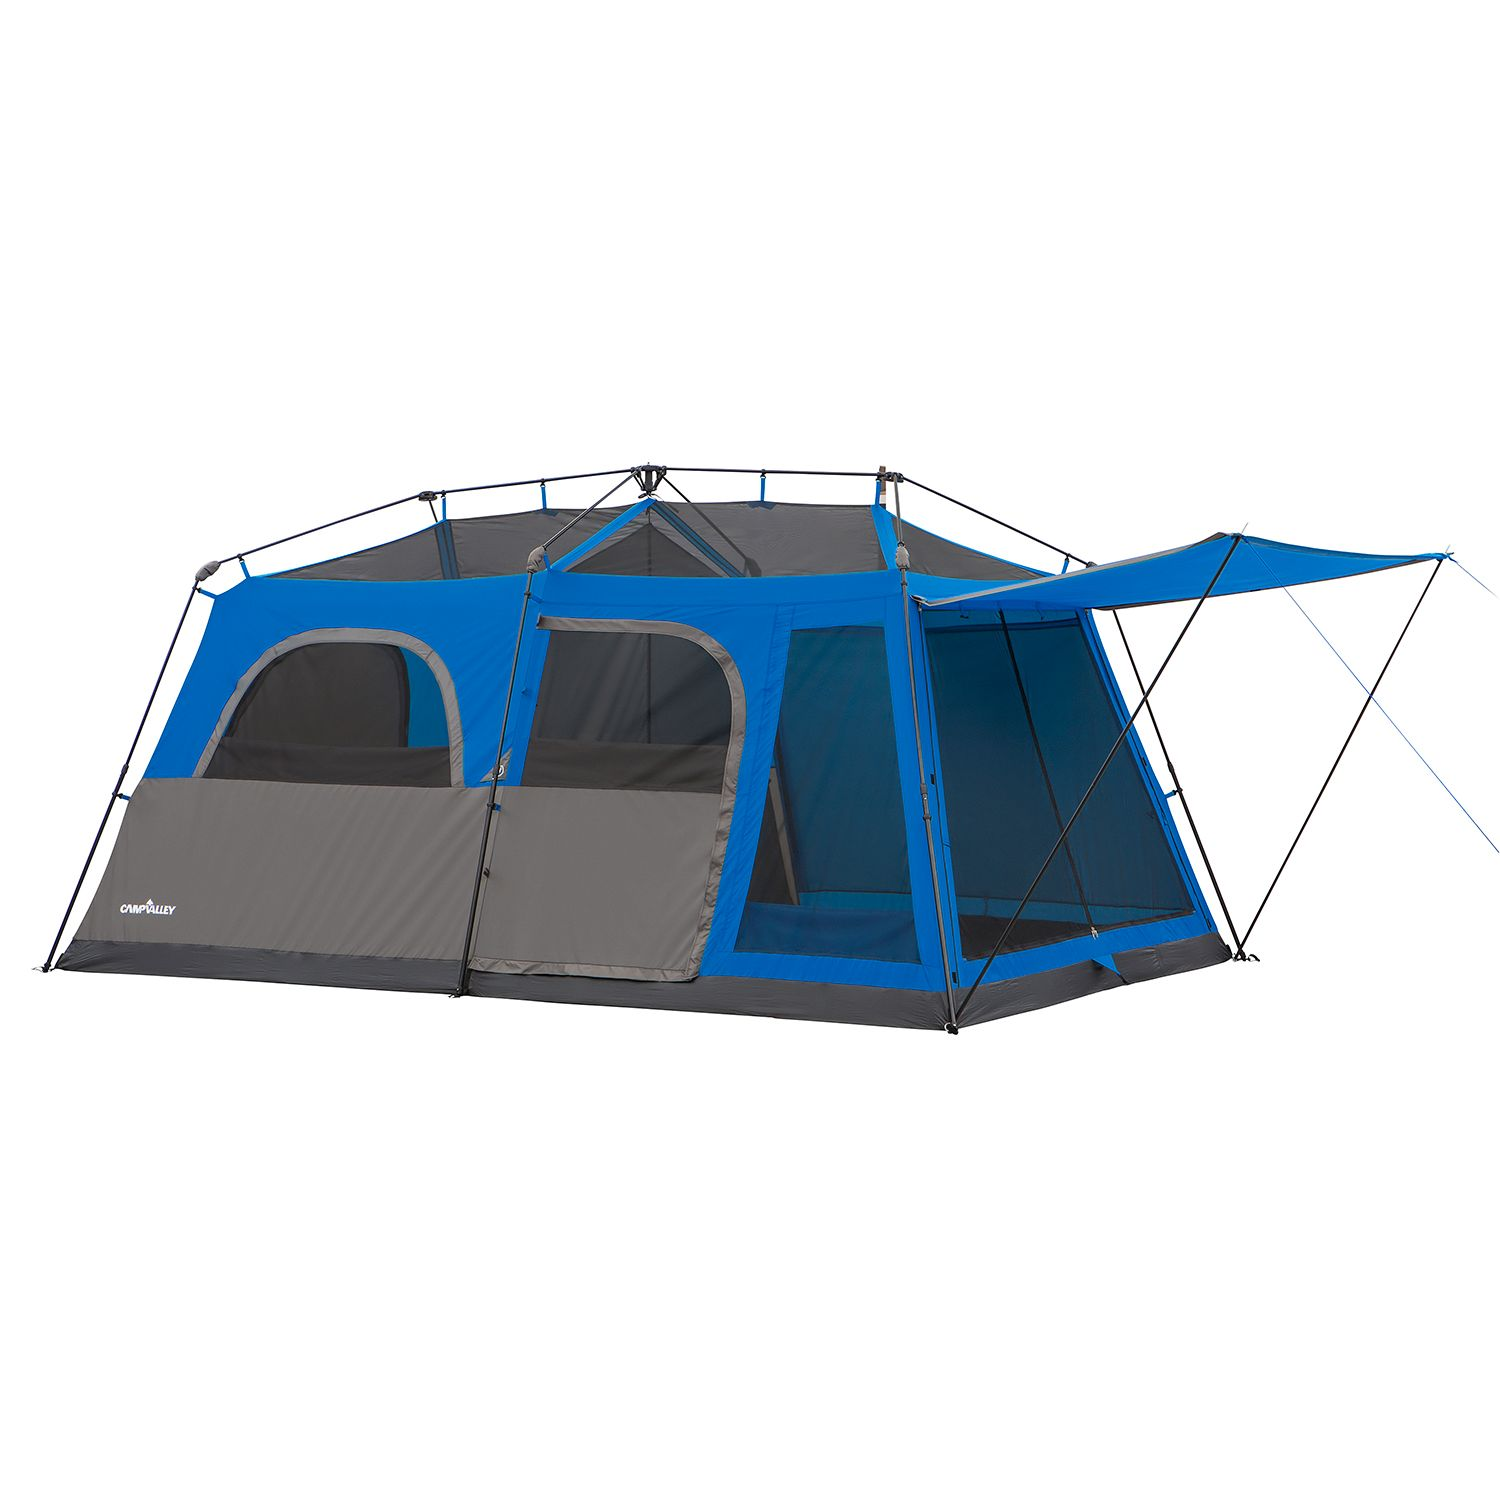 Campvalley 9 Person Instant Cabin Tent Blue Ebay